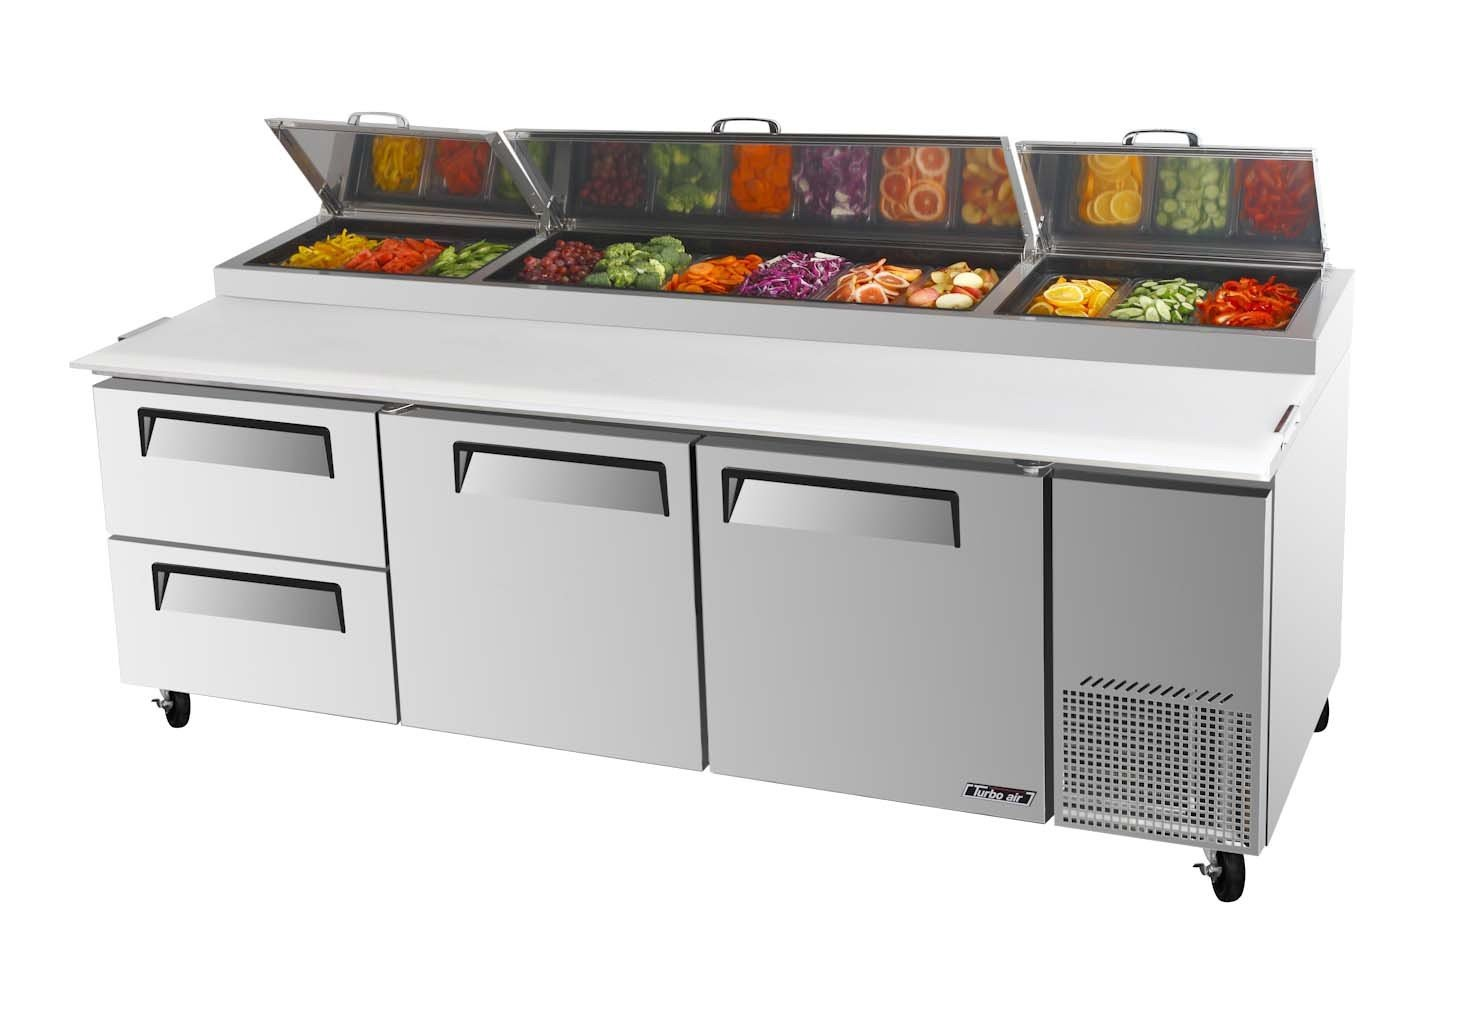 Amazon.com: Turbo Air TPR-93SD-D2 2 Drawer Pizza Preparation Table: Industrial & Scientific